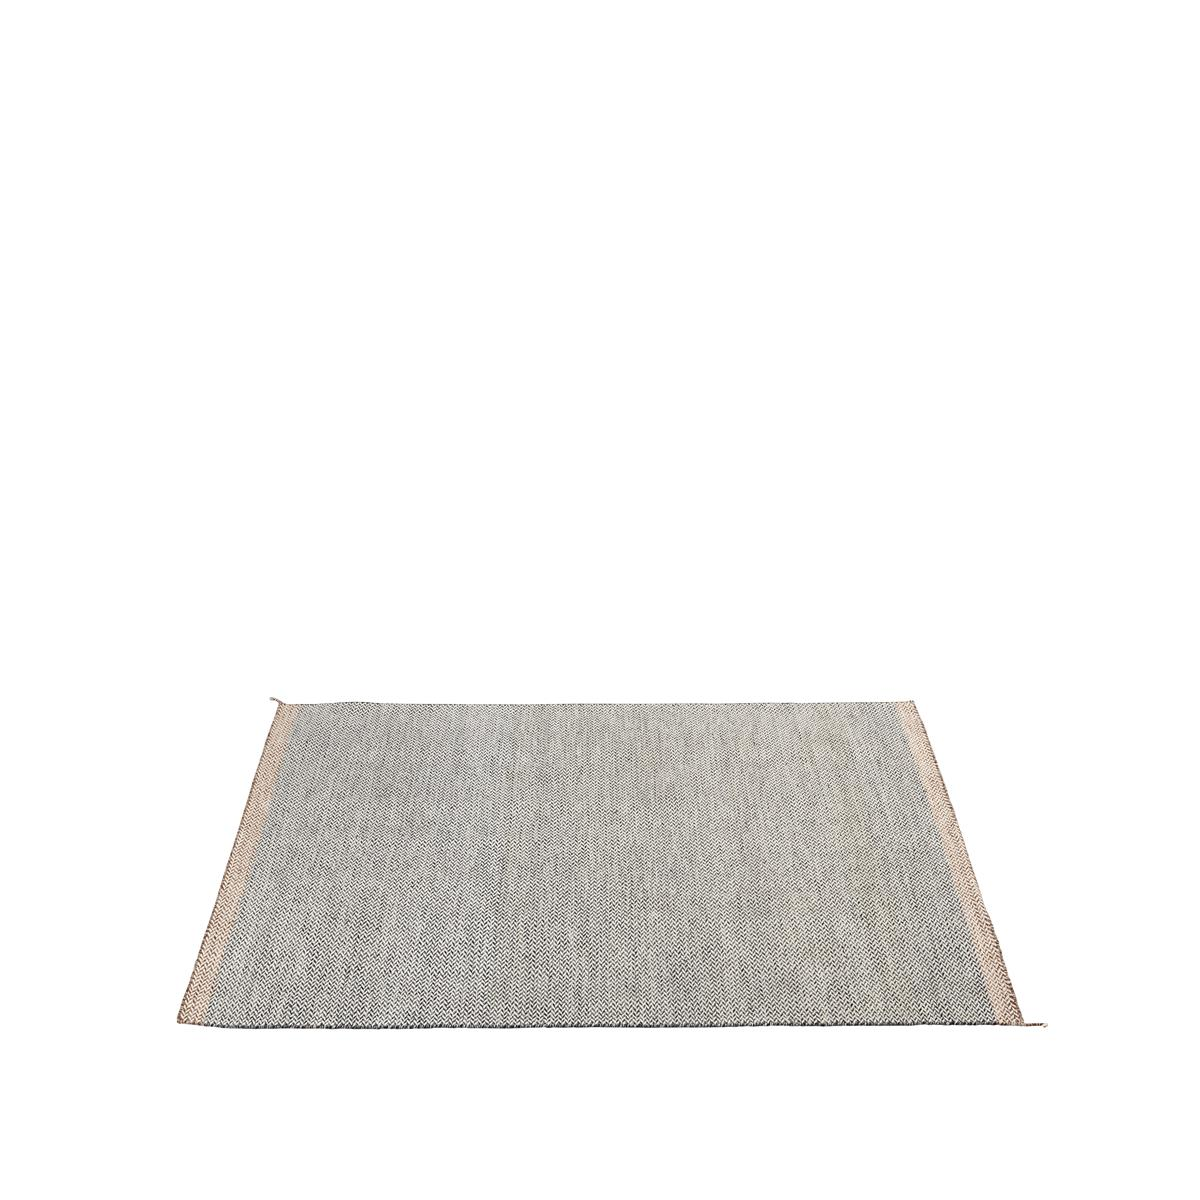 Ply Rug i 170 X 240 cm, Black-White